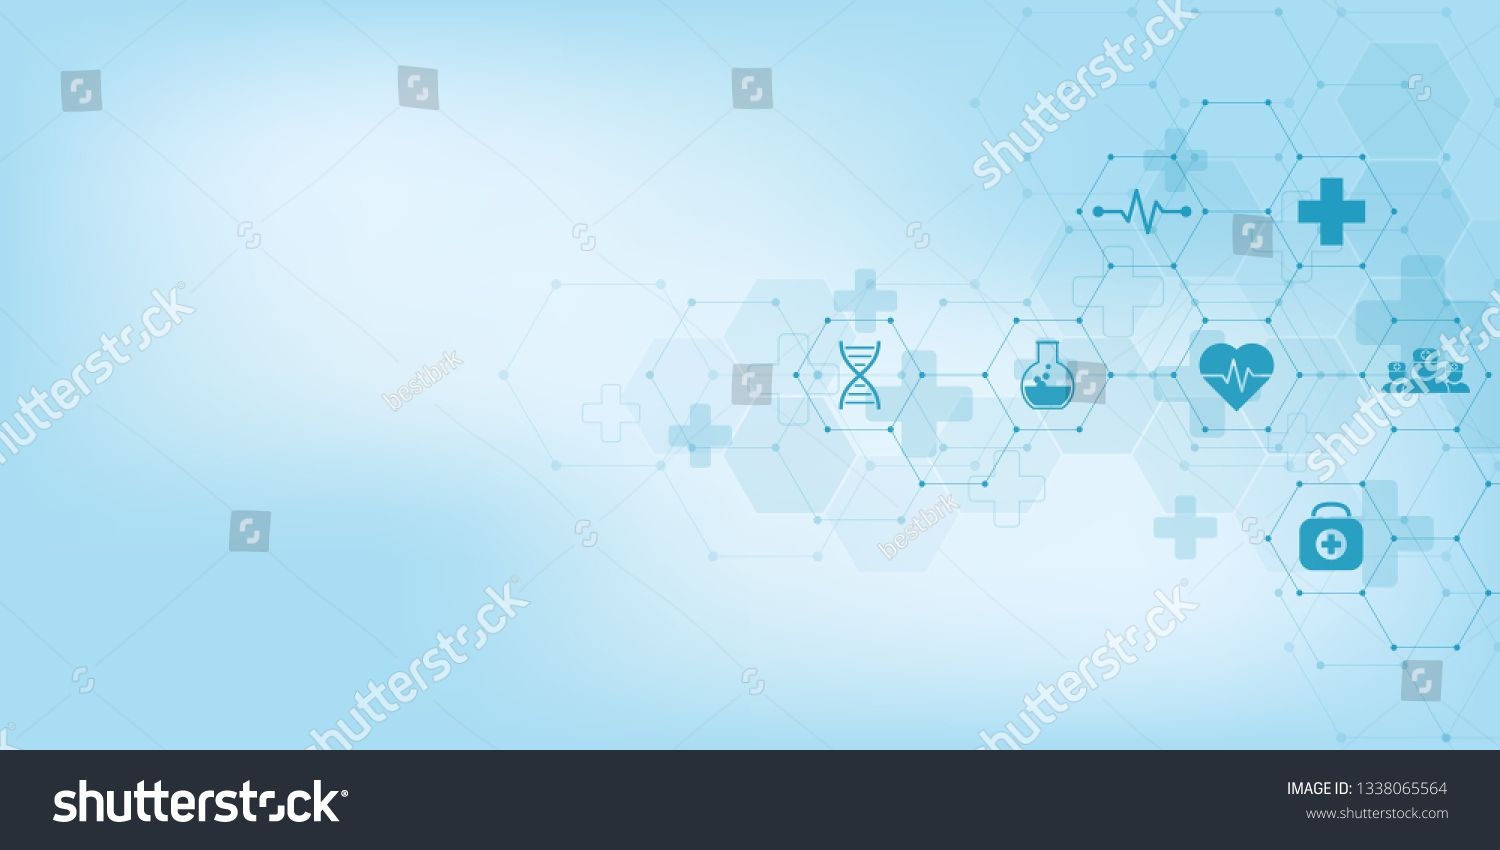 Abstract Medical Background With Flat Icons And Symbols Concepts And Ideas For Healthcare Technolog Medical Background Healthcare Technology Research Abstract